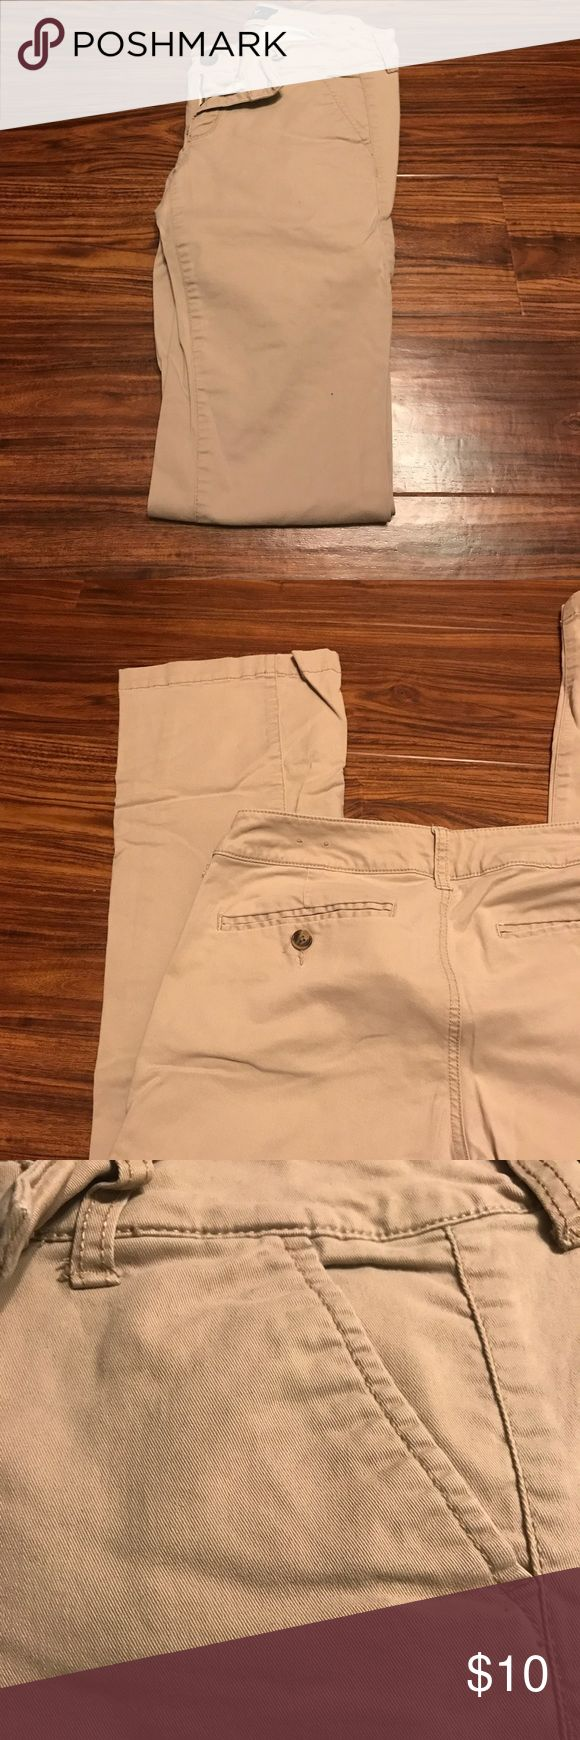 Women's Khaki Pants Women's khaki pant with front and back pockets. Back pockets have buttons. American Eagle Outfitters Pants Trousers